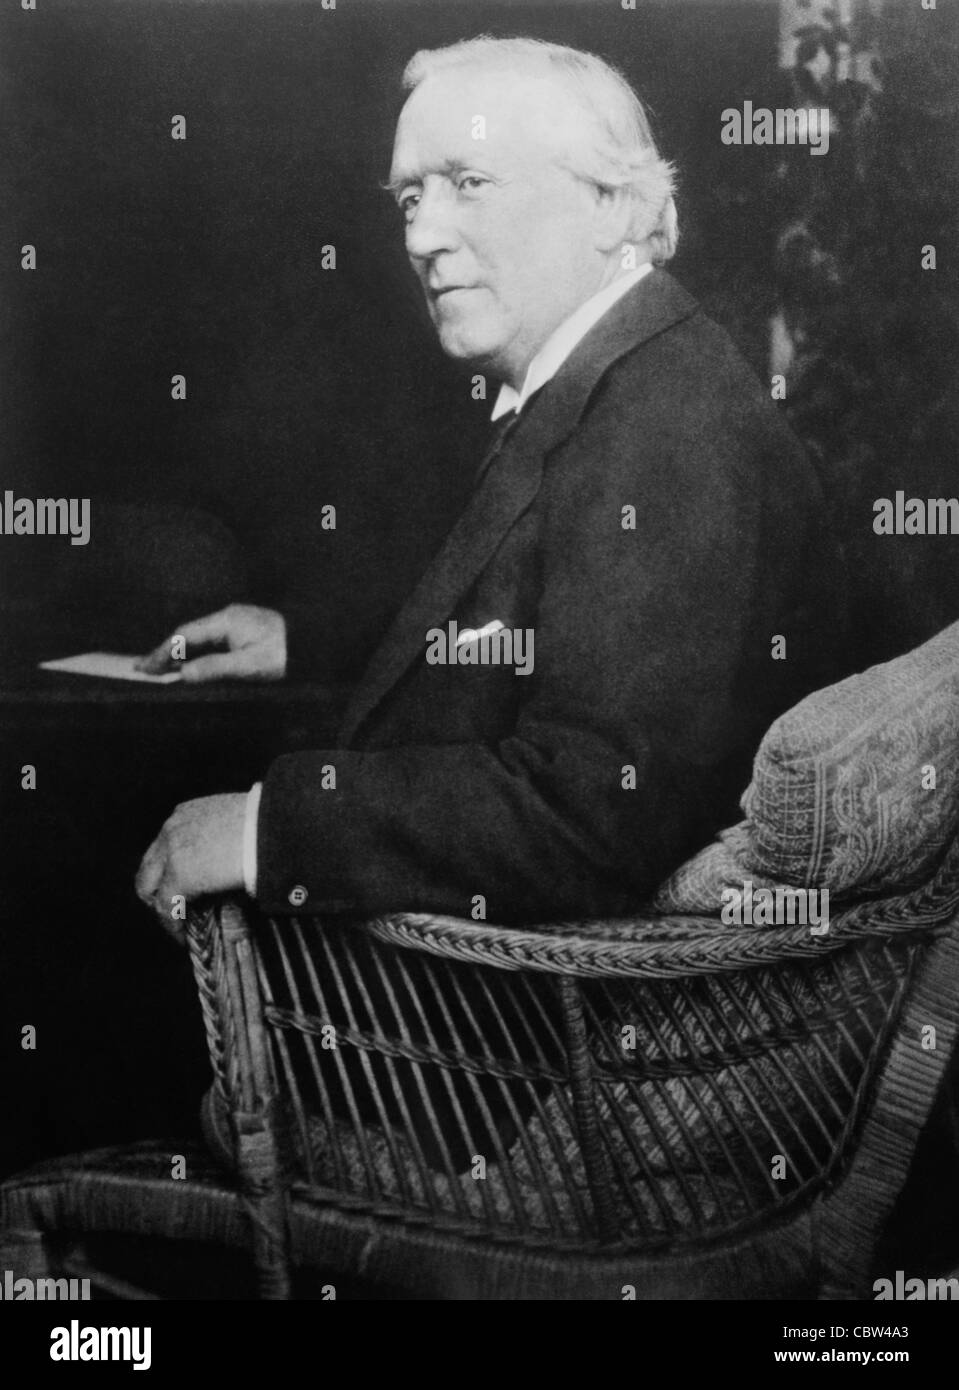 Vintage portrait photo circa 1910s of British politician Herbert Henry Asquith (1852 - 1928) - Liberal Prime Minister - Stock Image